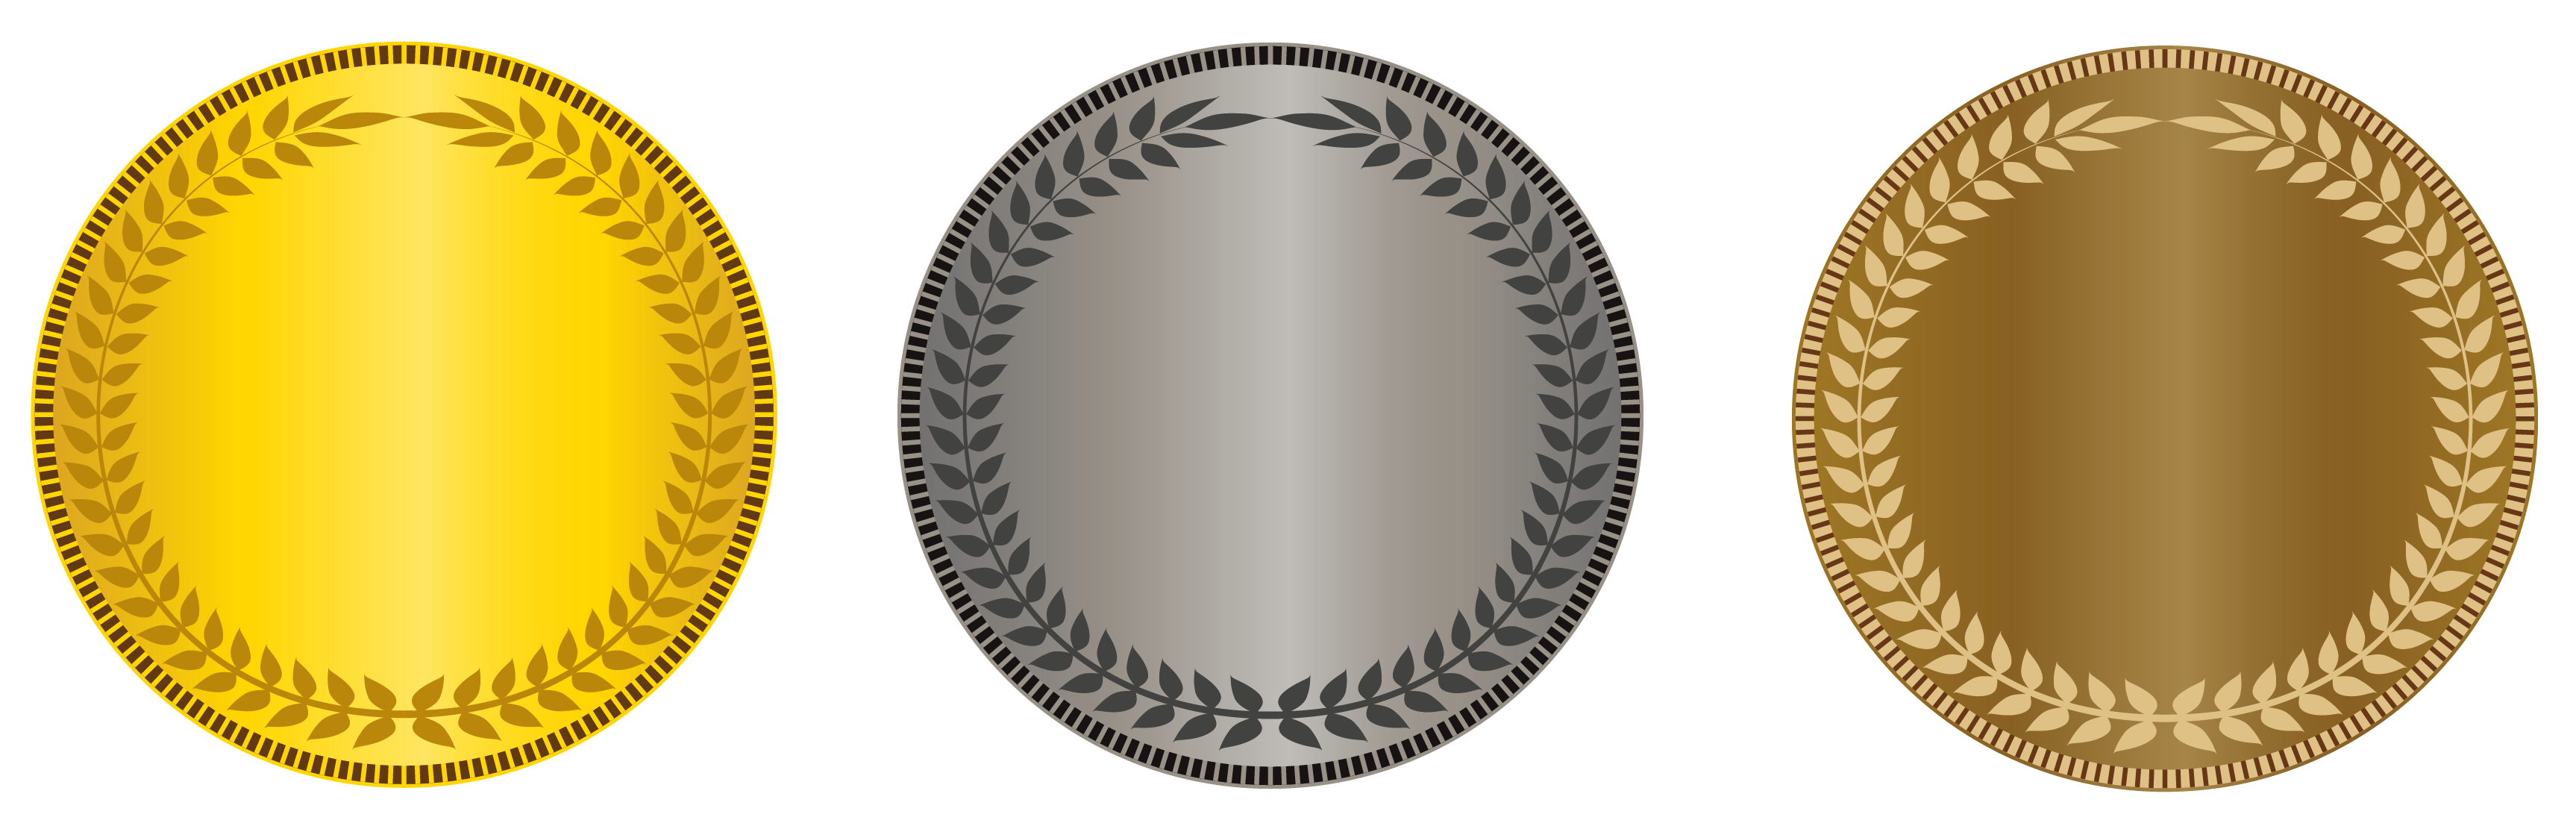 Gold clipart gold silver. Transparent bronze medals png